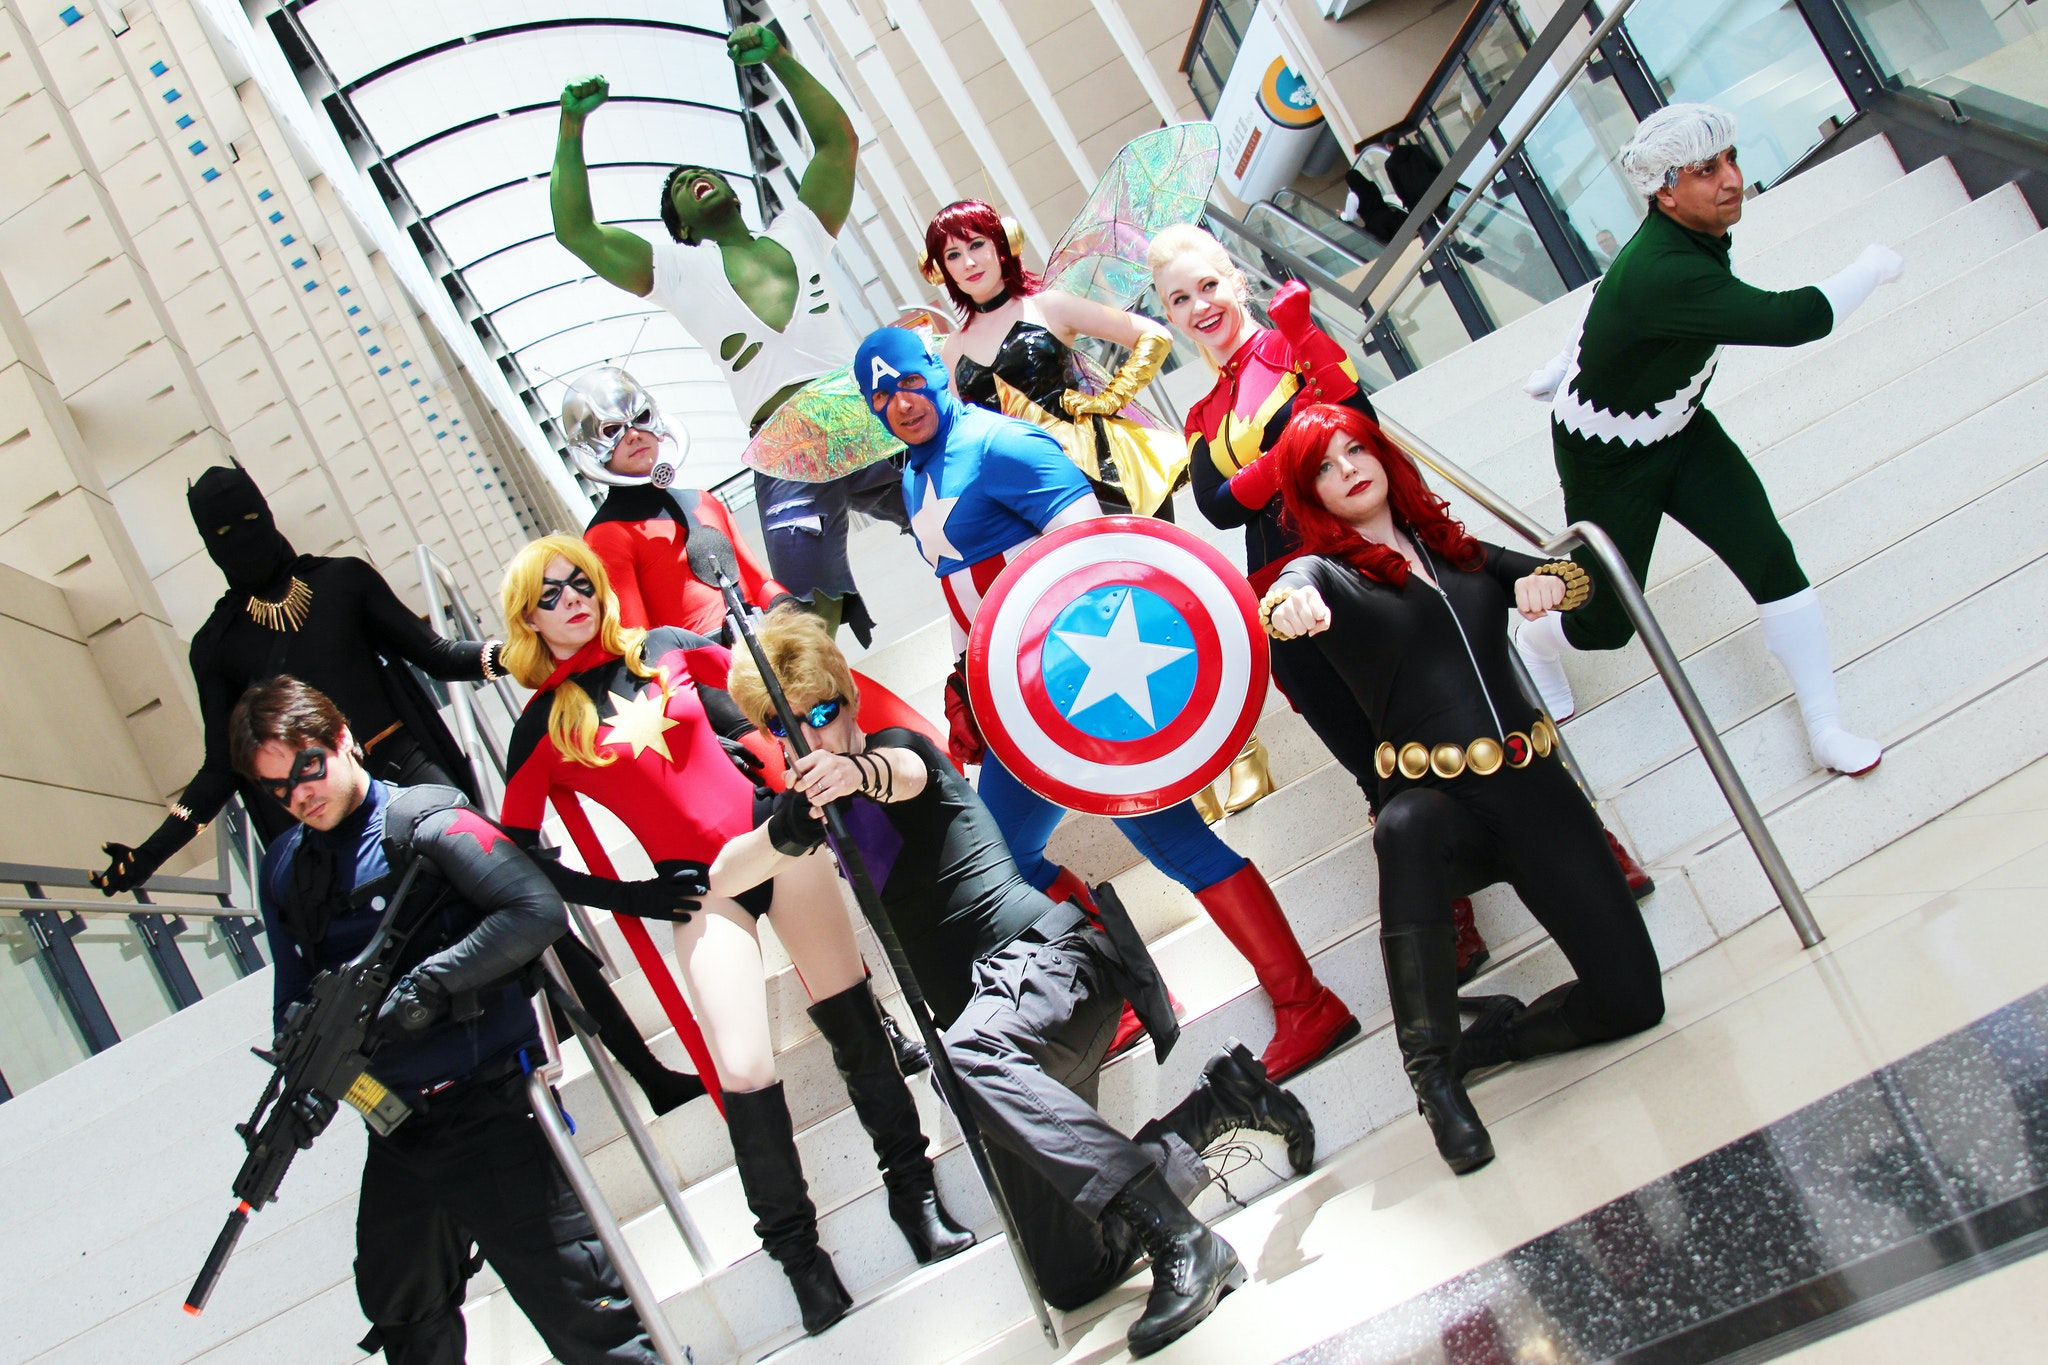 Avengers cosplay at the Chicago Comic and Entertainment Expo